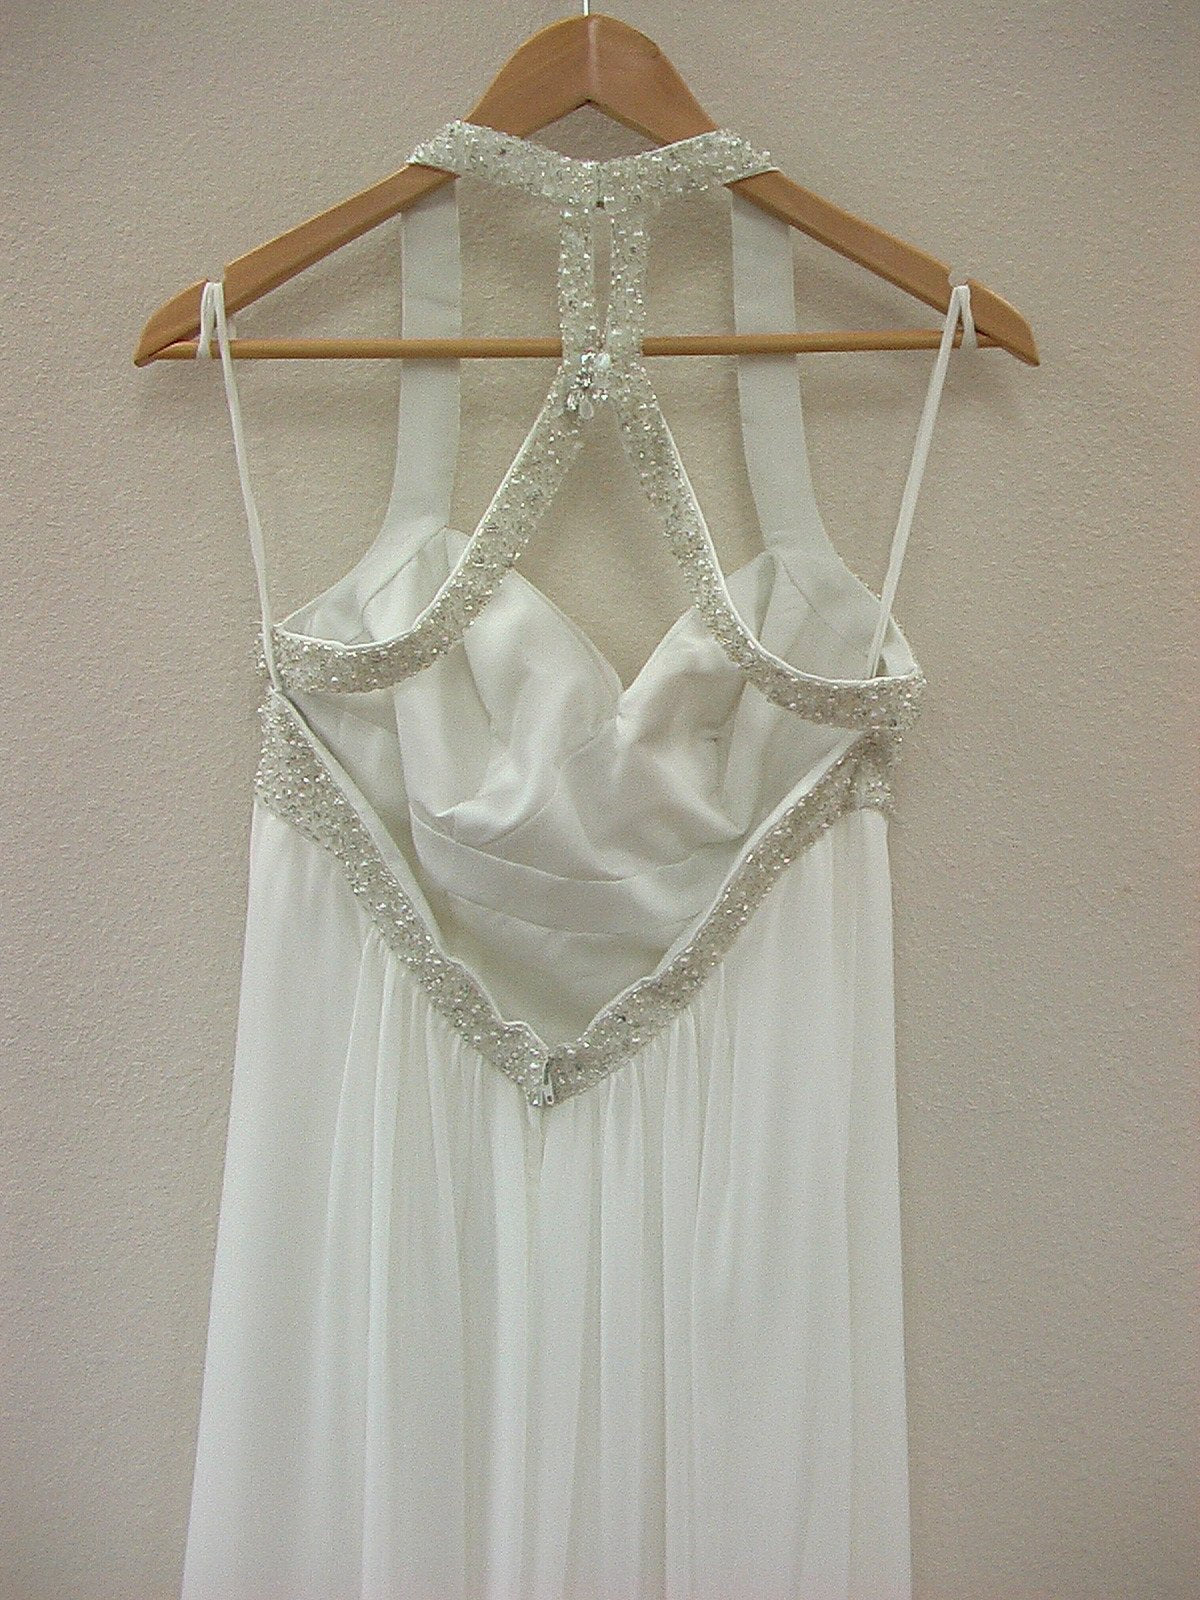 Moonlight T443 Ivory size 8 In Stock Wedding Dress - Tom's Bridal